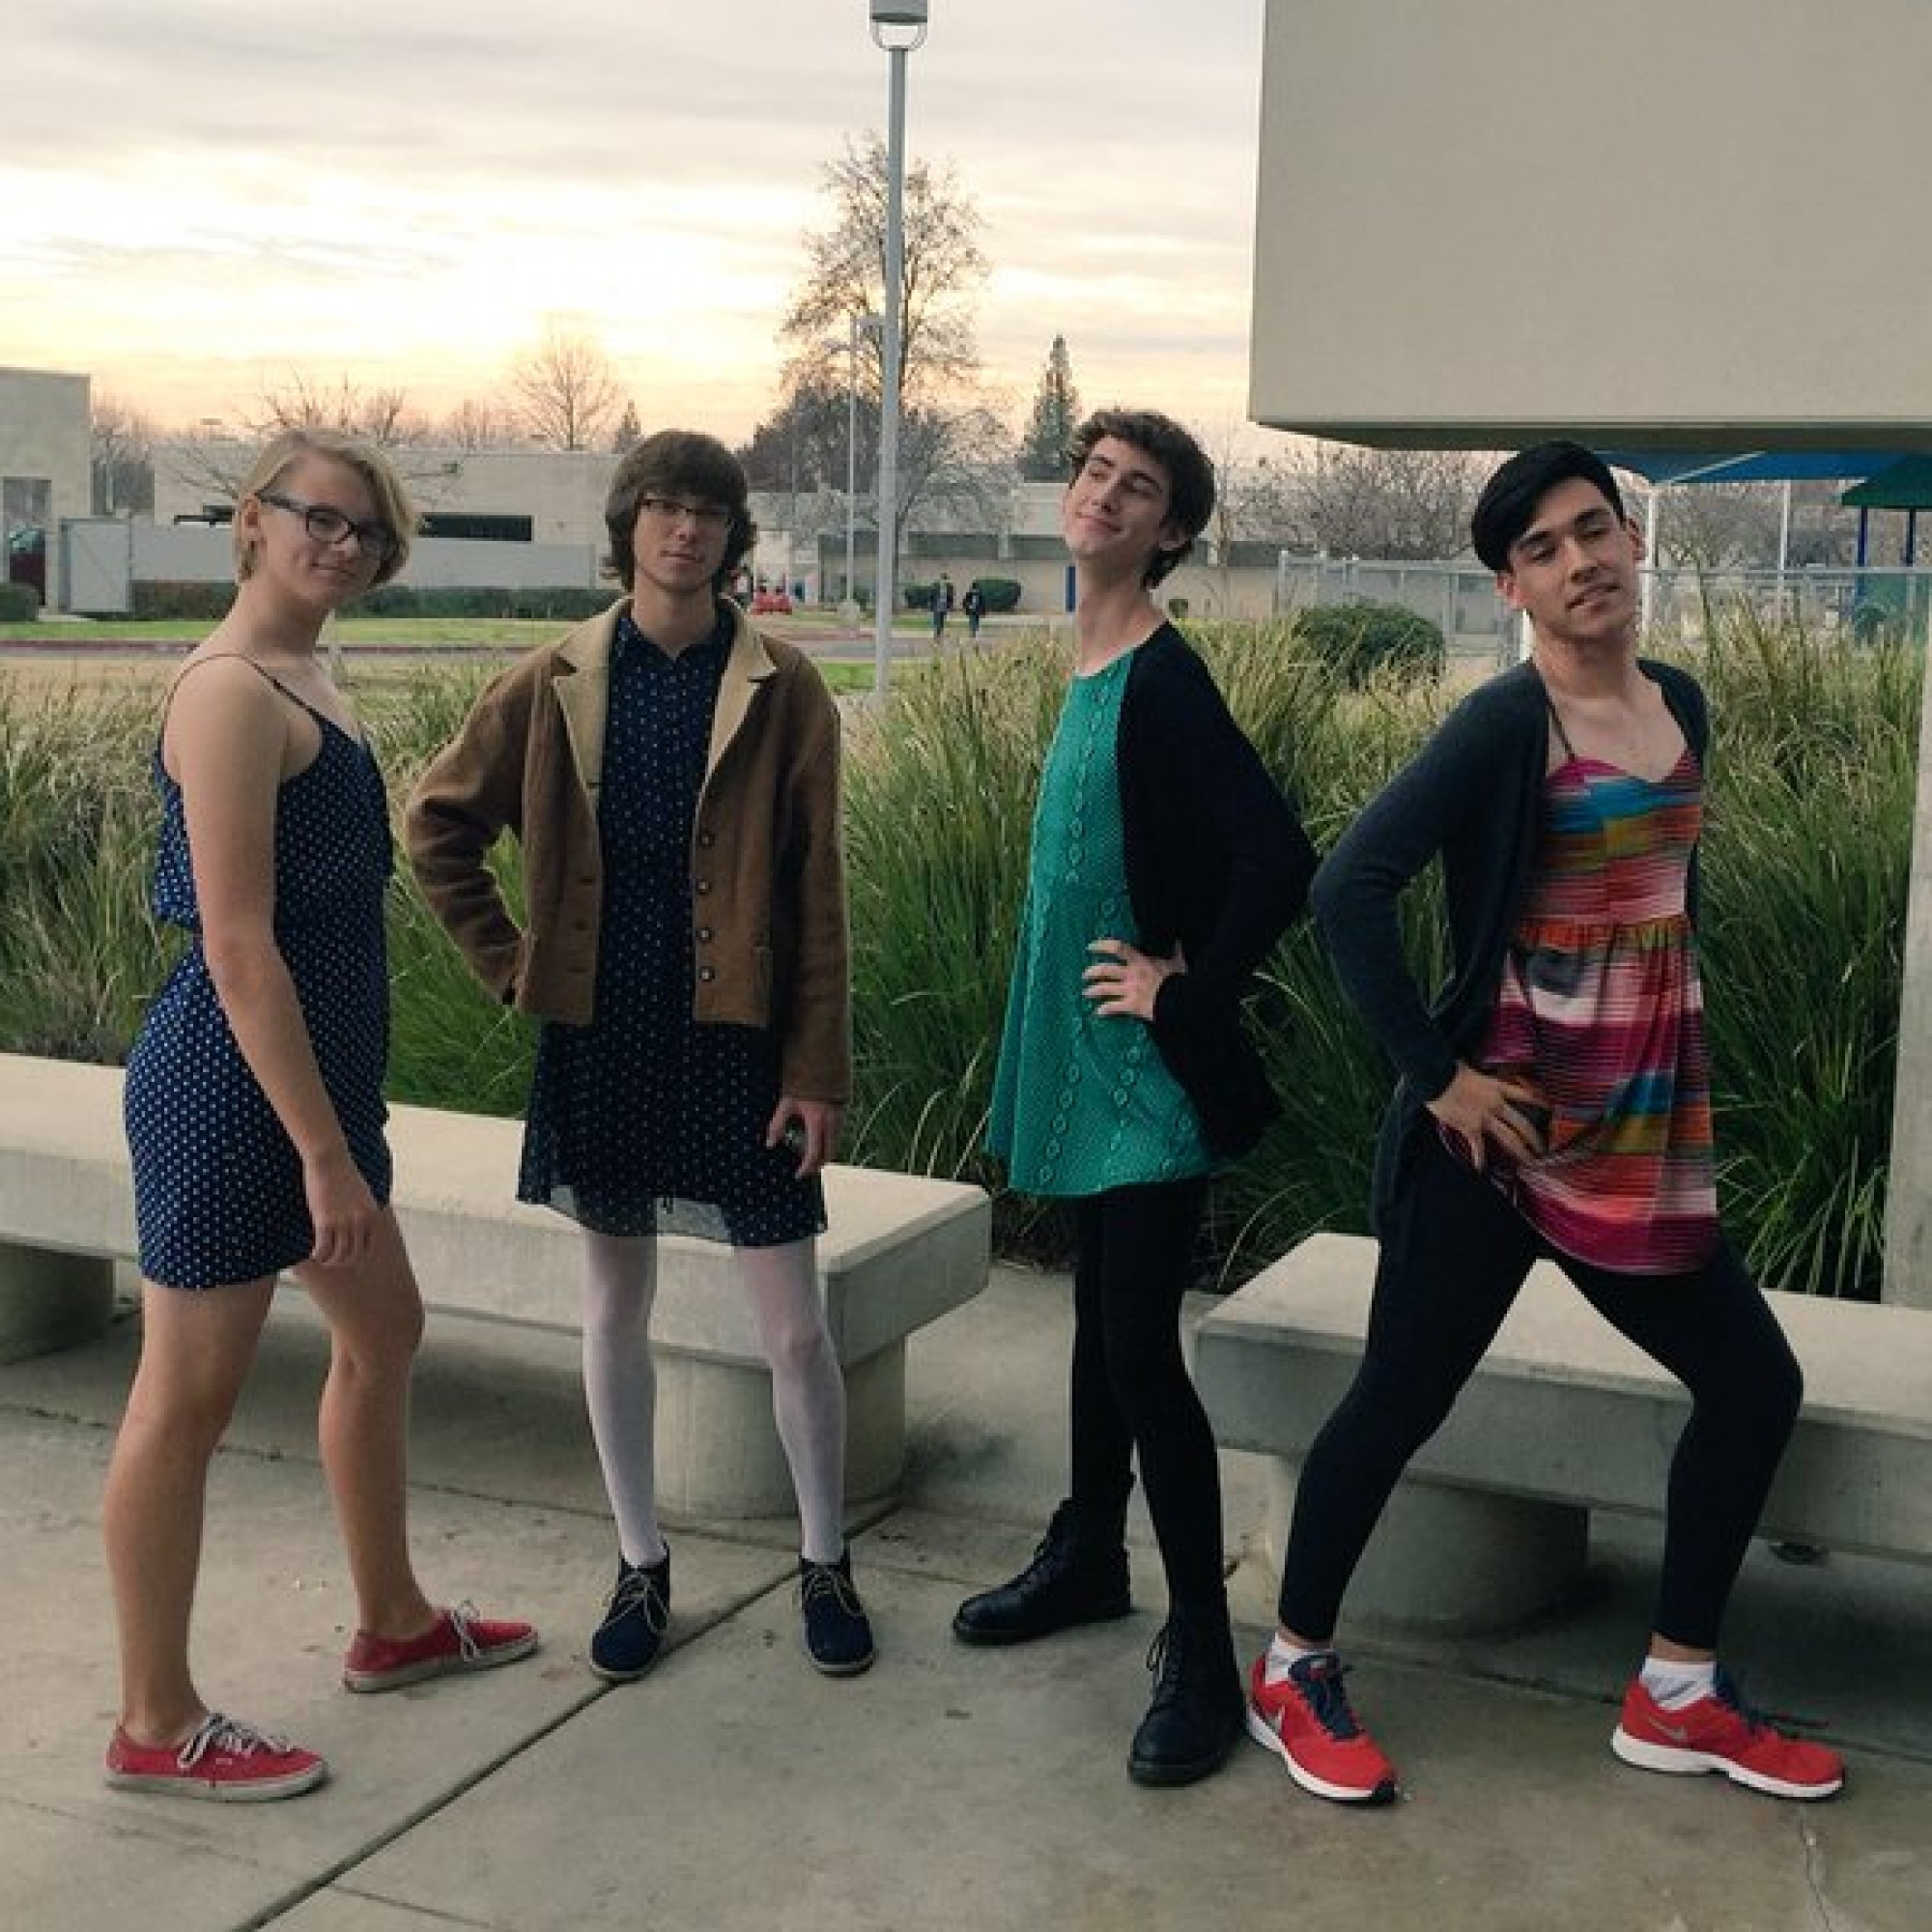 A group of young lads wore dresses to school to protest the harsh dress code